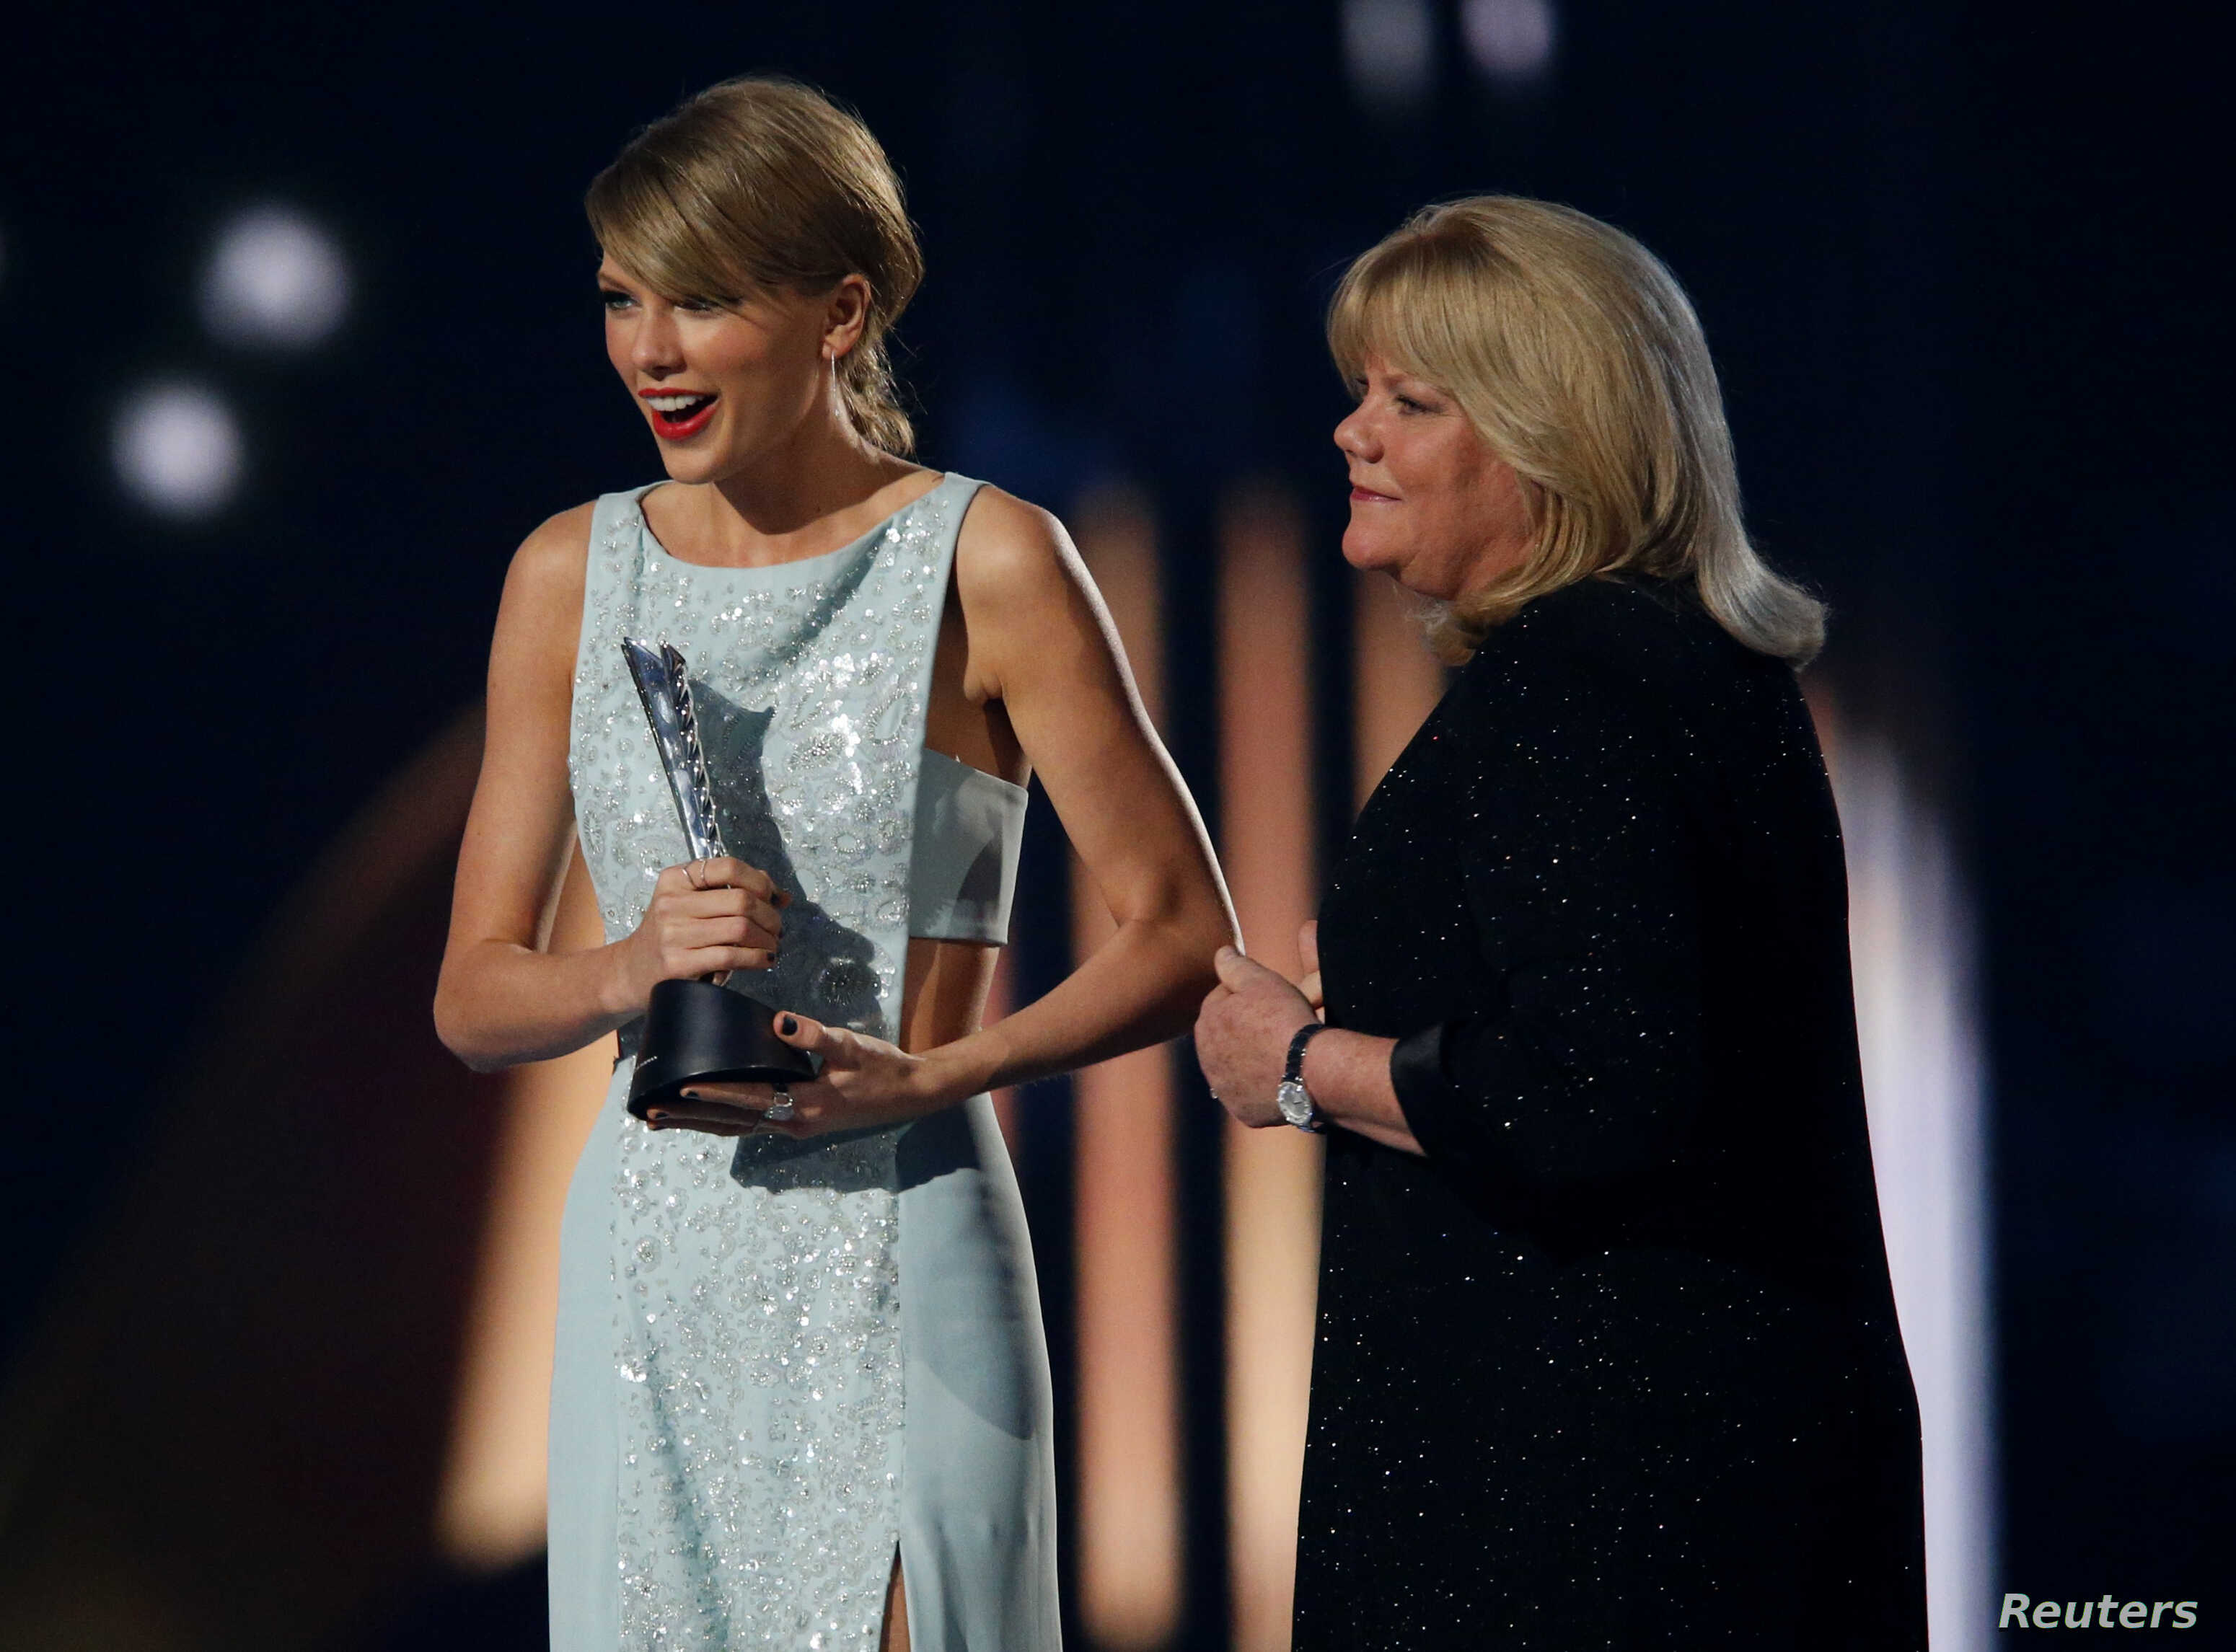 Taylor Swift Given Milestone Award At Country Music Awards Voice Of America English